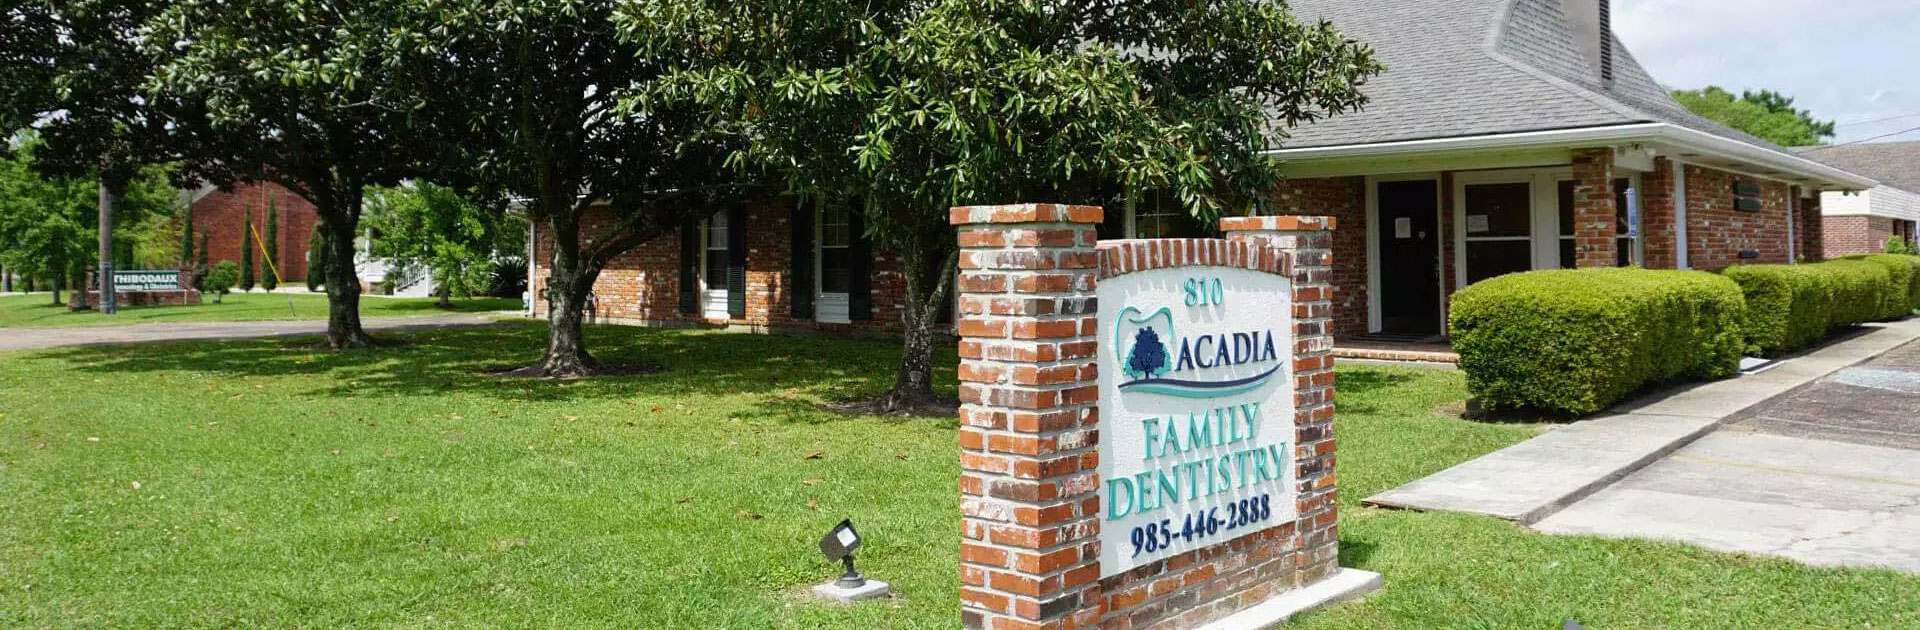 Acadia Family Dentistry Front View